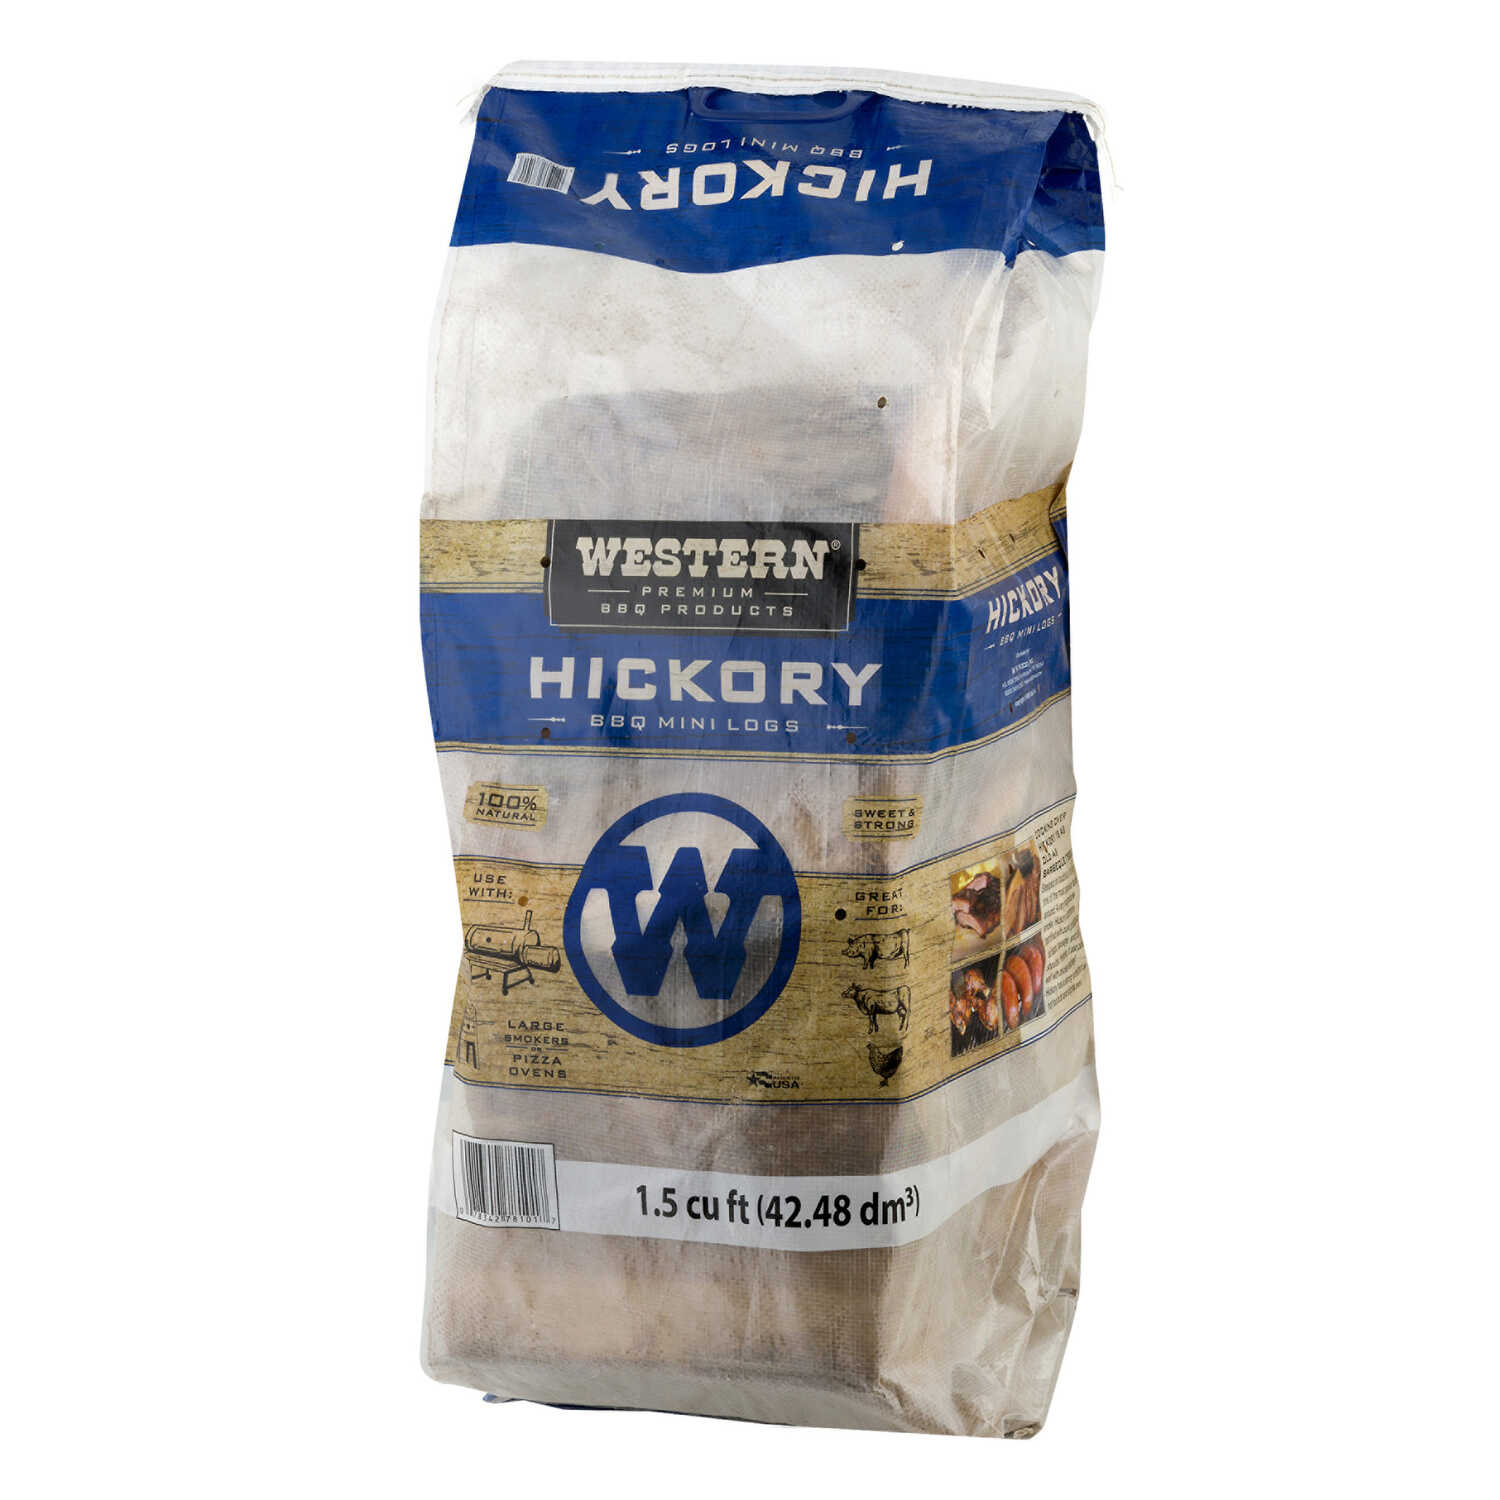 Western Premium BBQ Products  Hickory  Hardwood Pellets  1.5 cu ft cu. in.